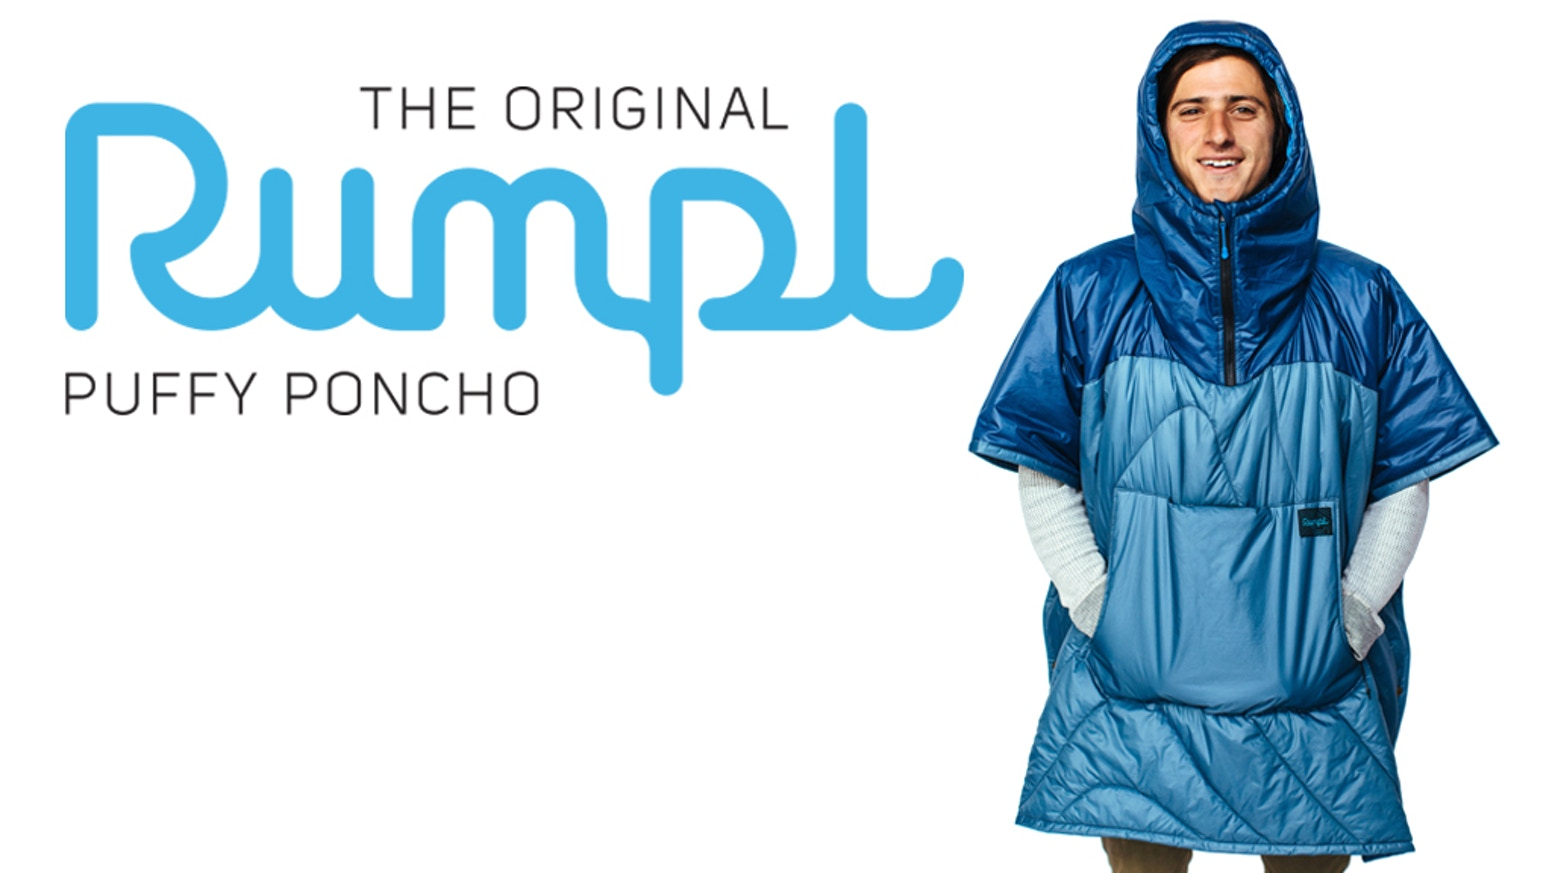 The Puffy Poncho is the greatest poncho ever. It's warm, cozy, waterproof, packable, machine washable, and it holds your beverage.